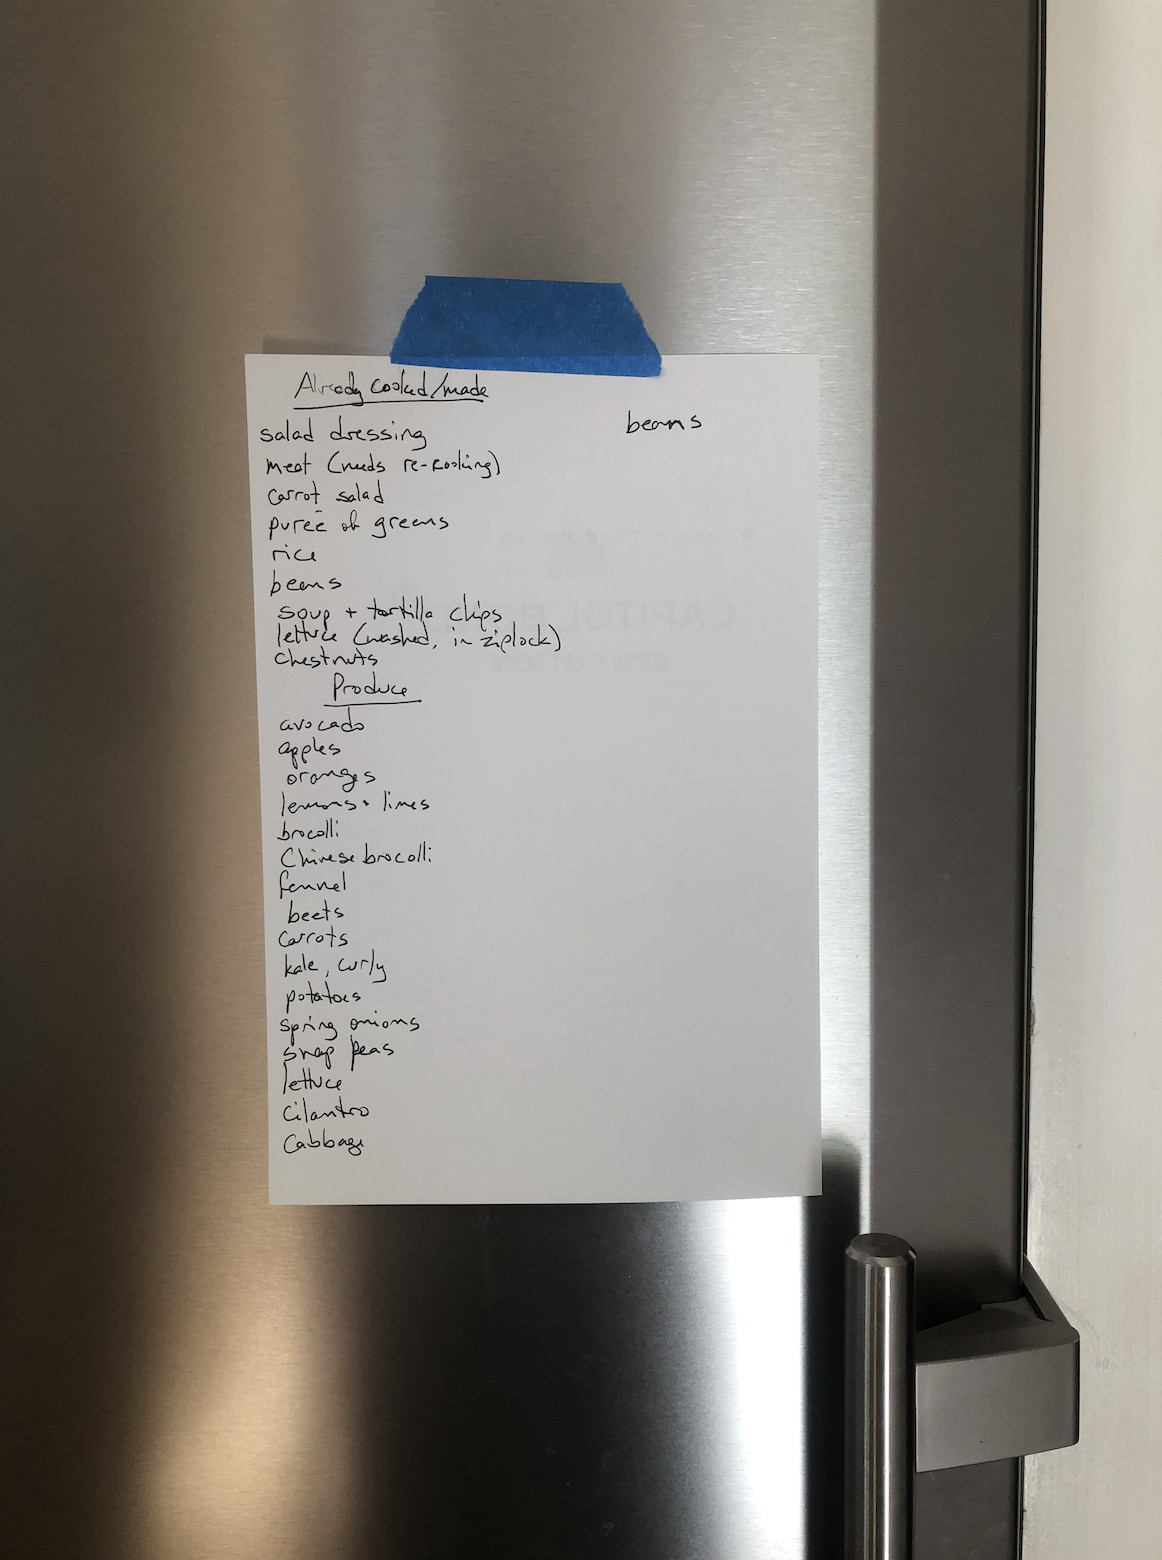 A list of ingredients and dishes taped to the outside of a metal fridge.